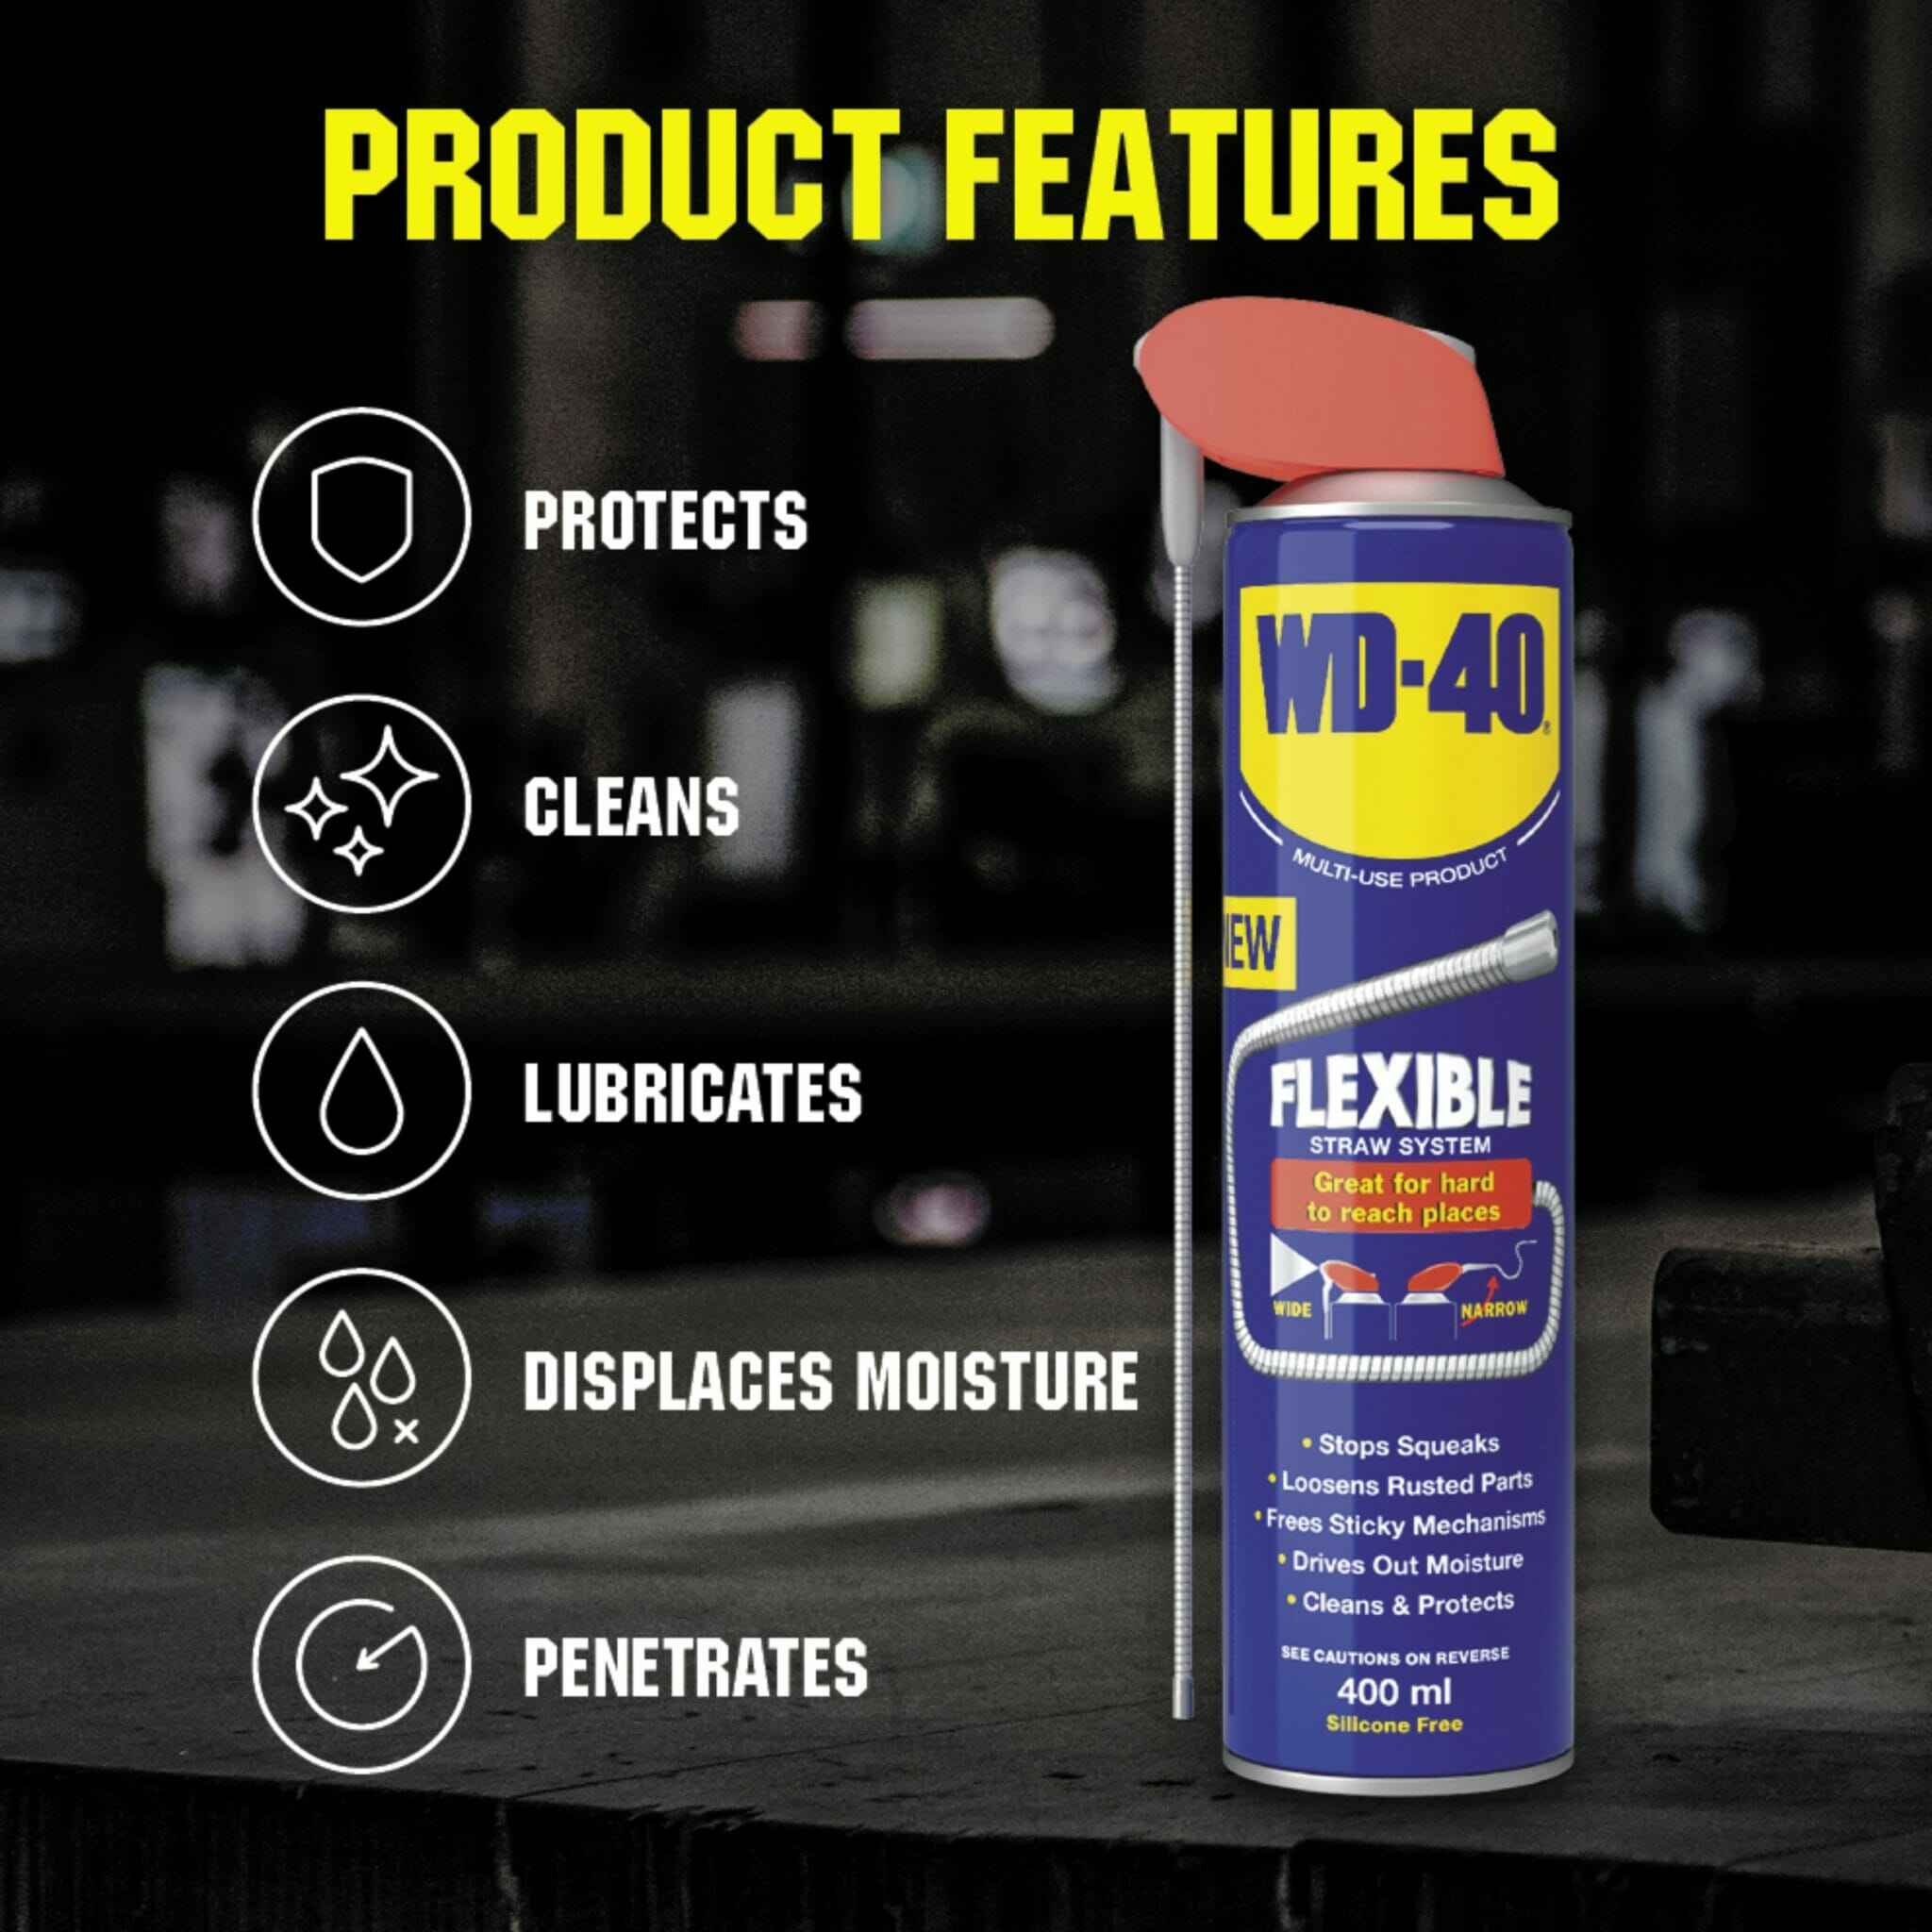 uk wd40 mup flexible straw 400ml product features lifestyle background